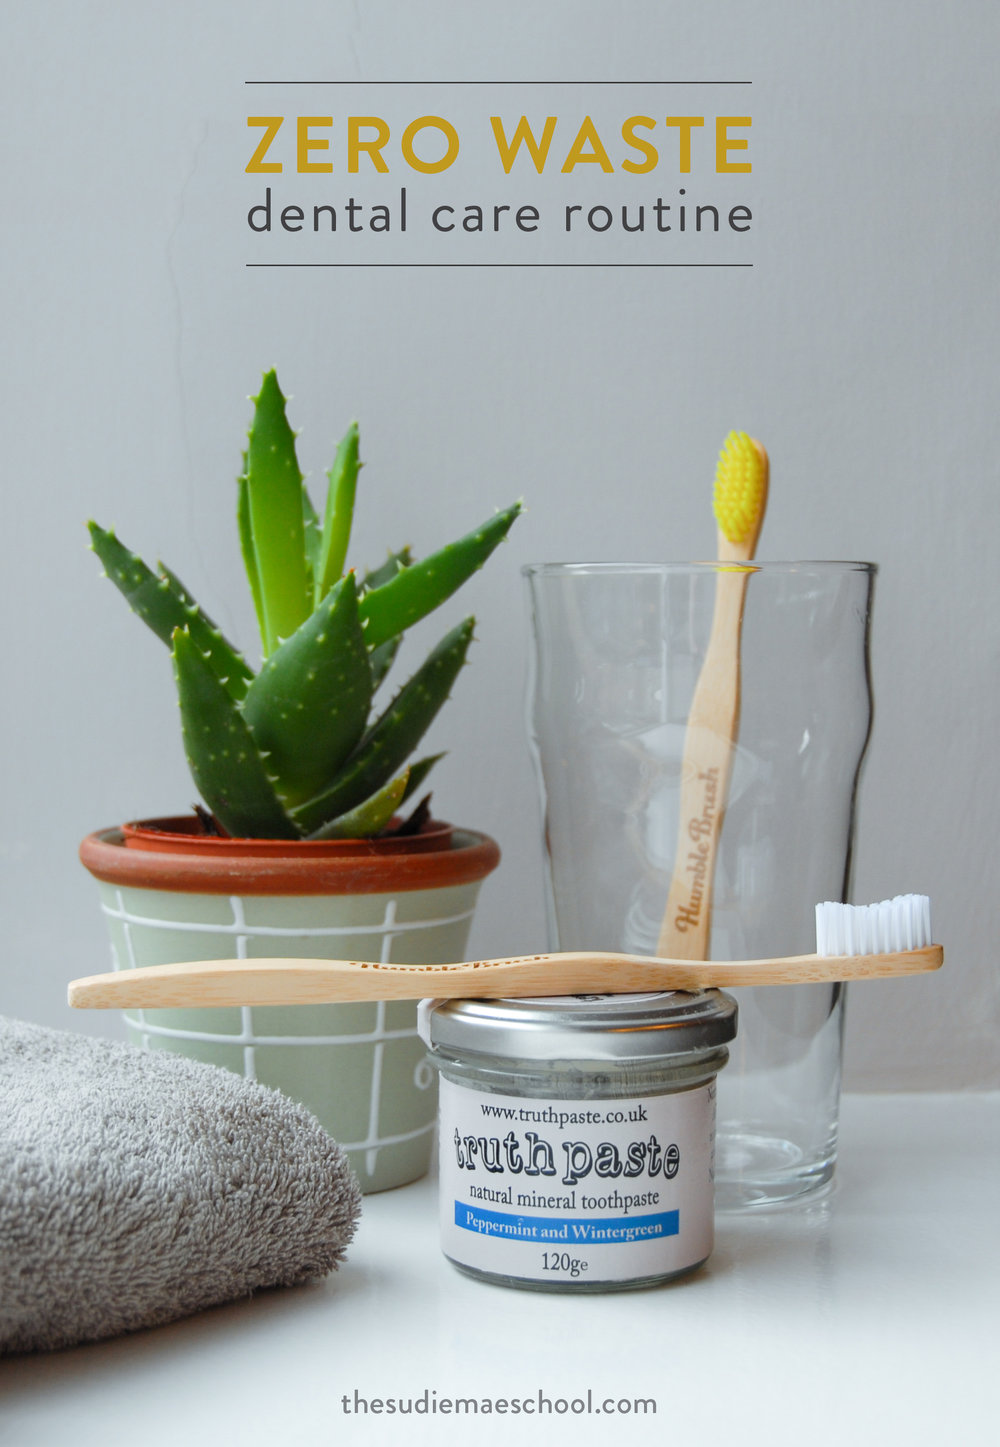 Zero waste dental care